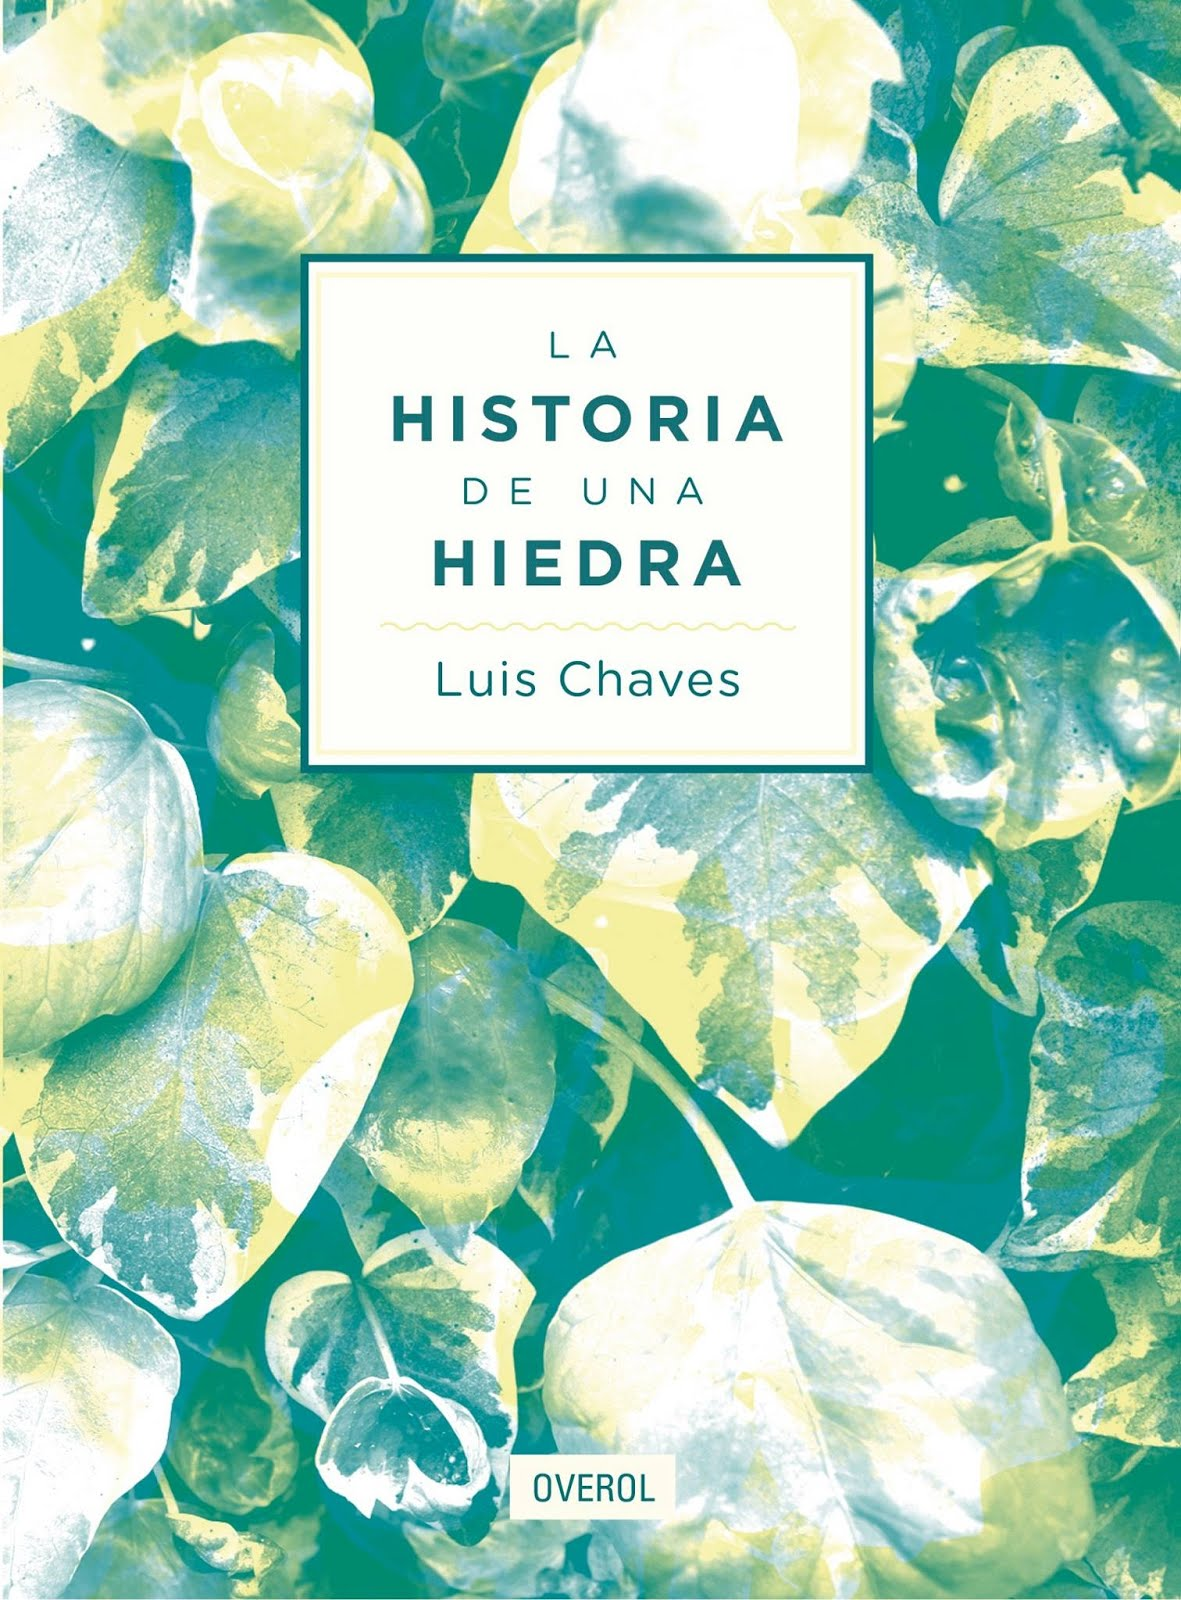 La historia de una hiedra / Ediciones Overol  / Chile / 2017